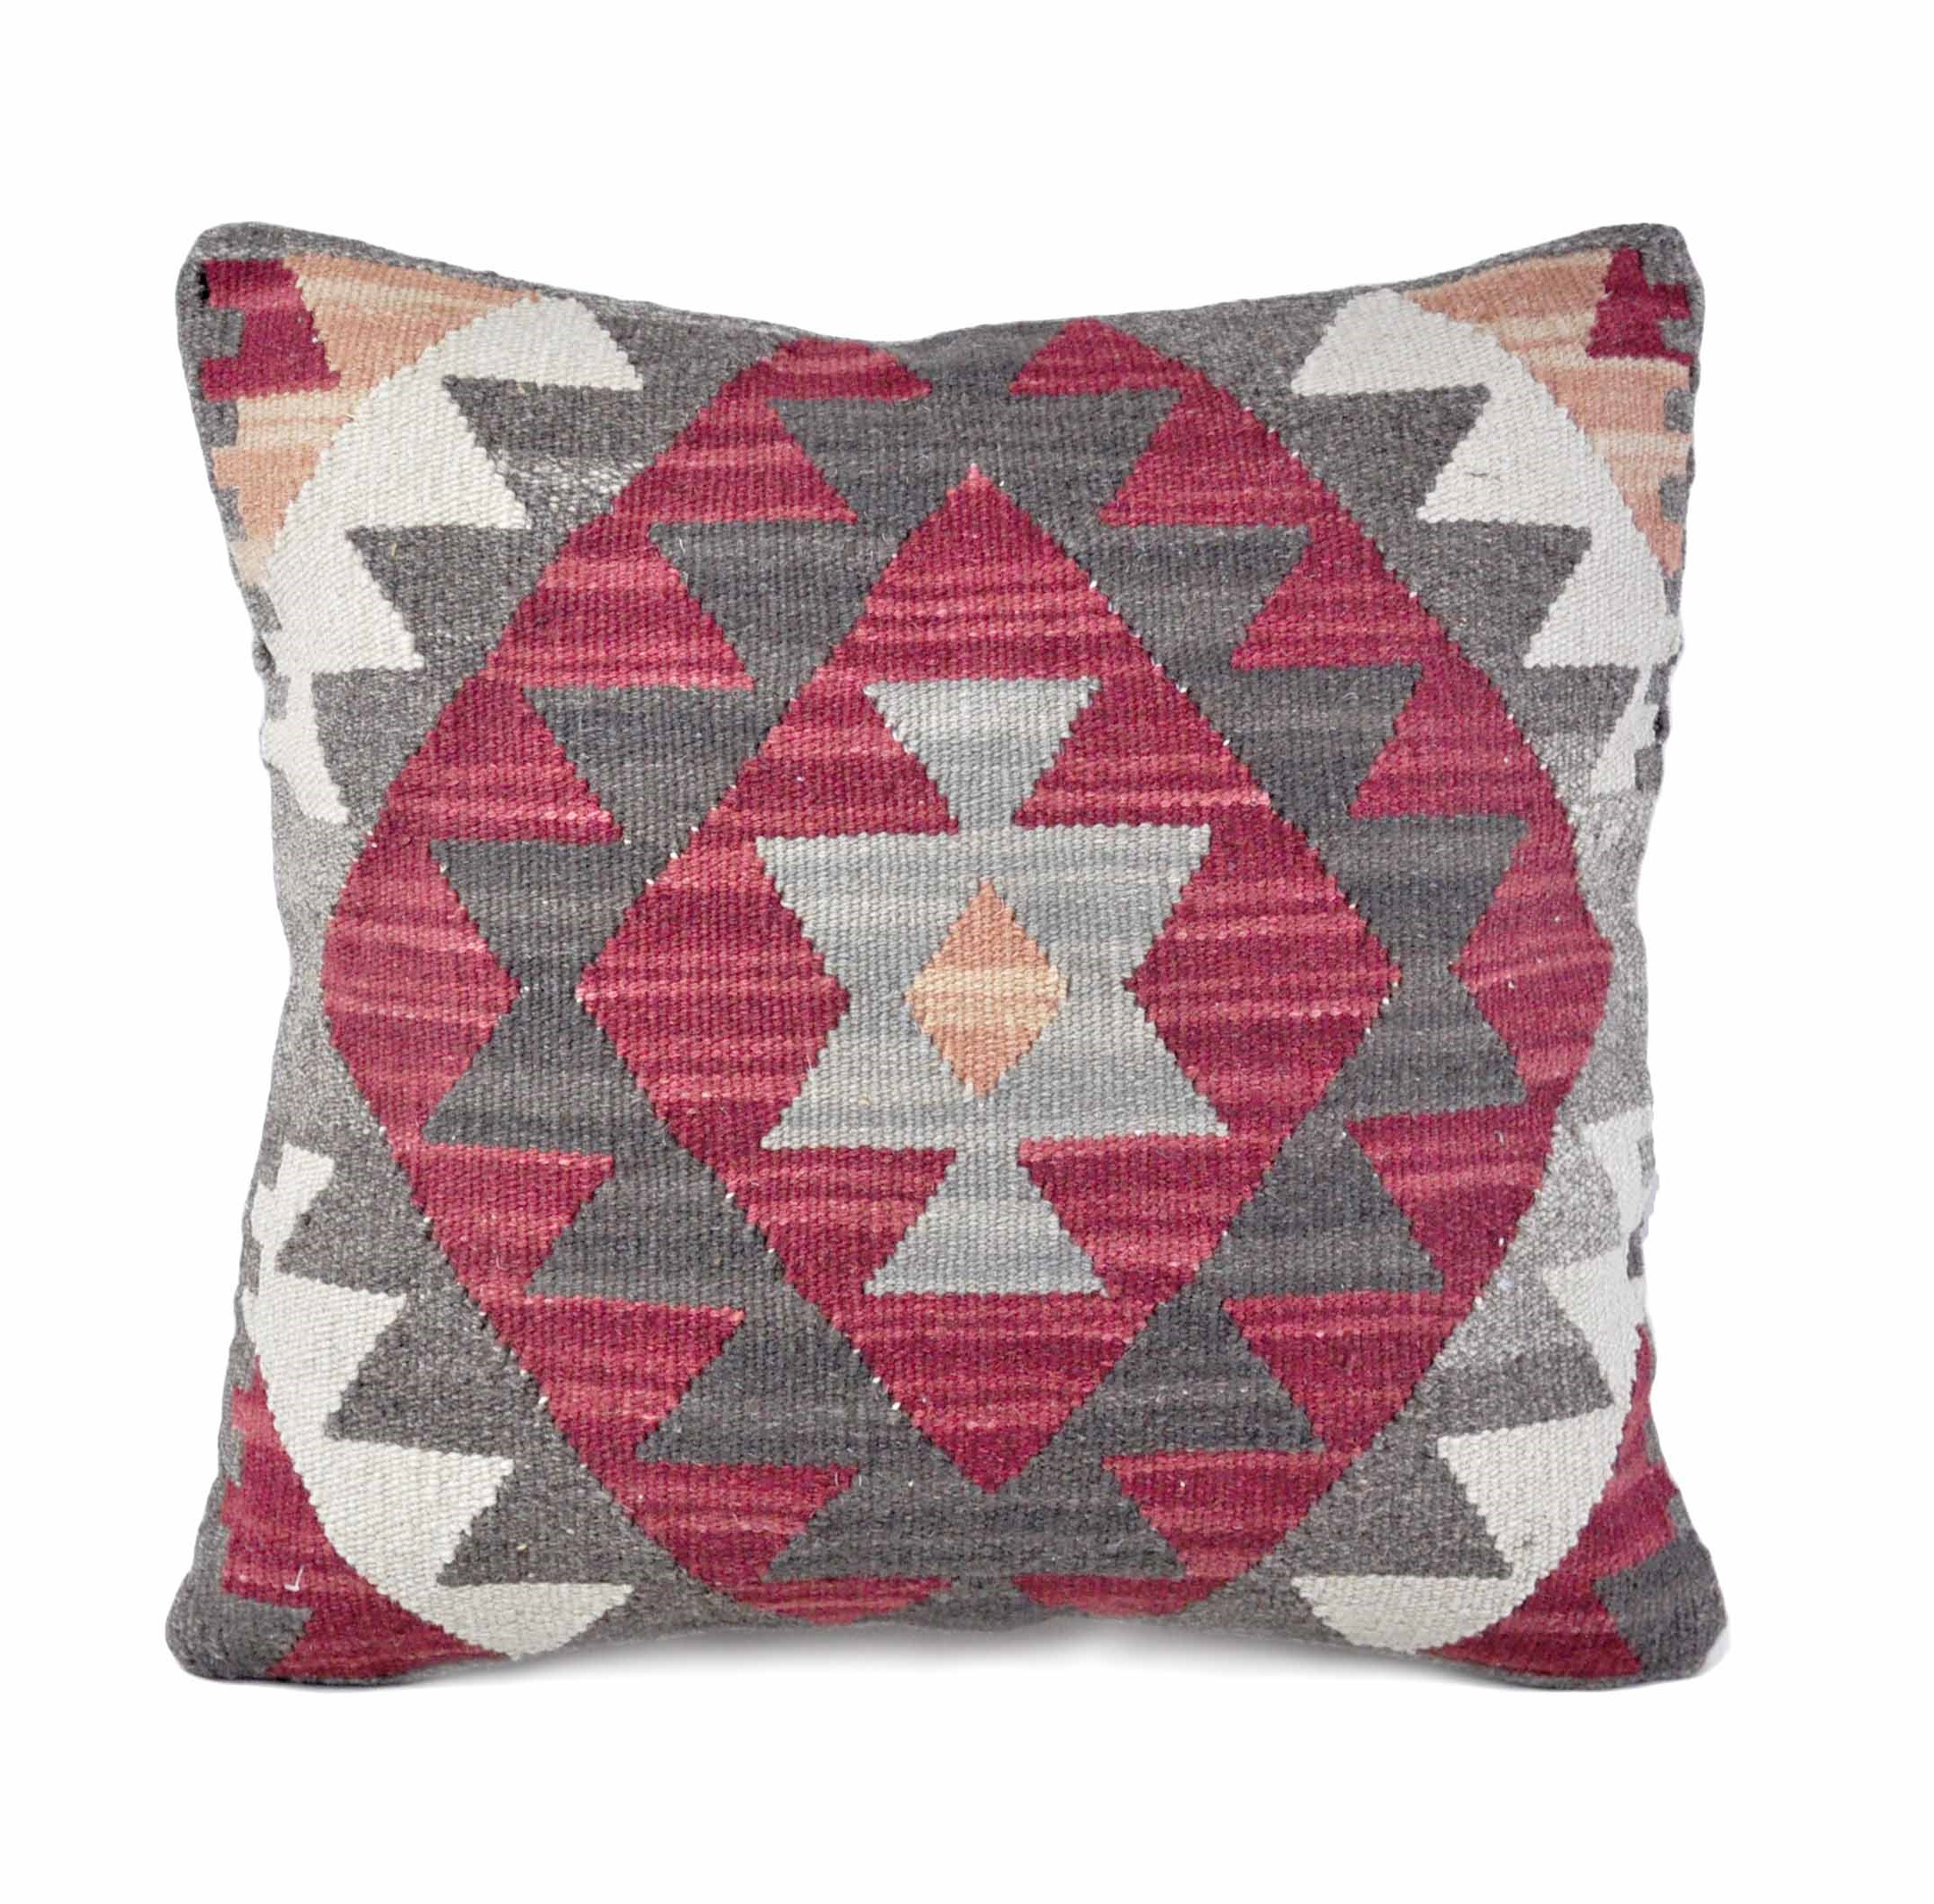 18×18 Hand-woven Wool Kilim Pillow Cover 12981033